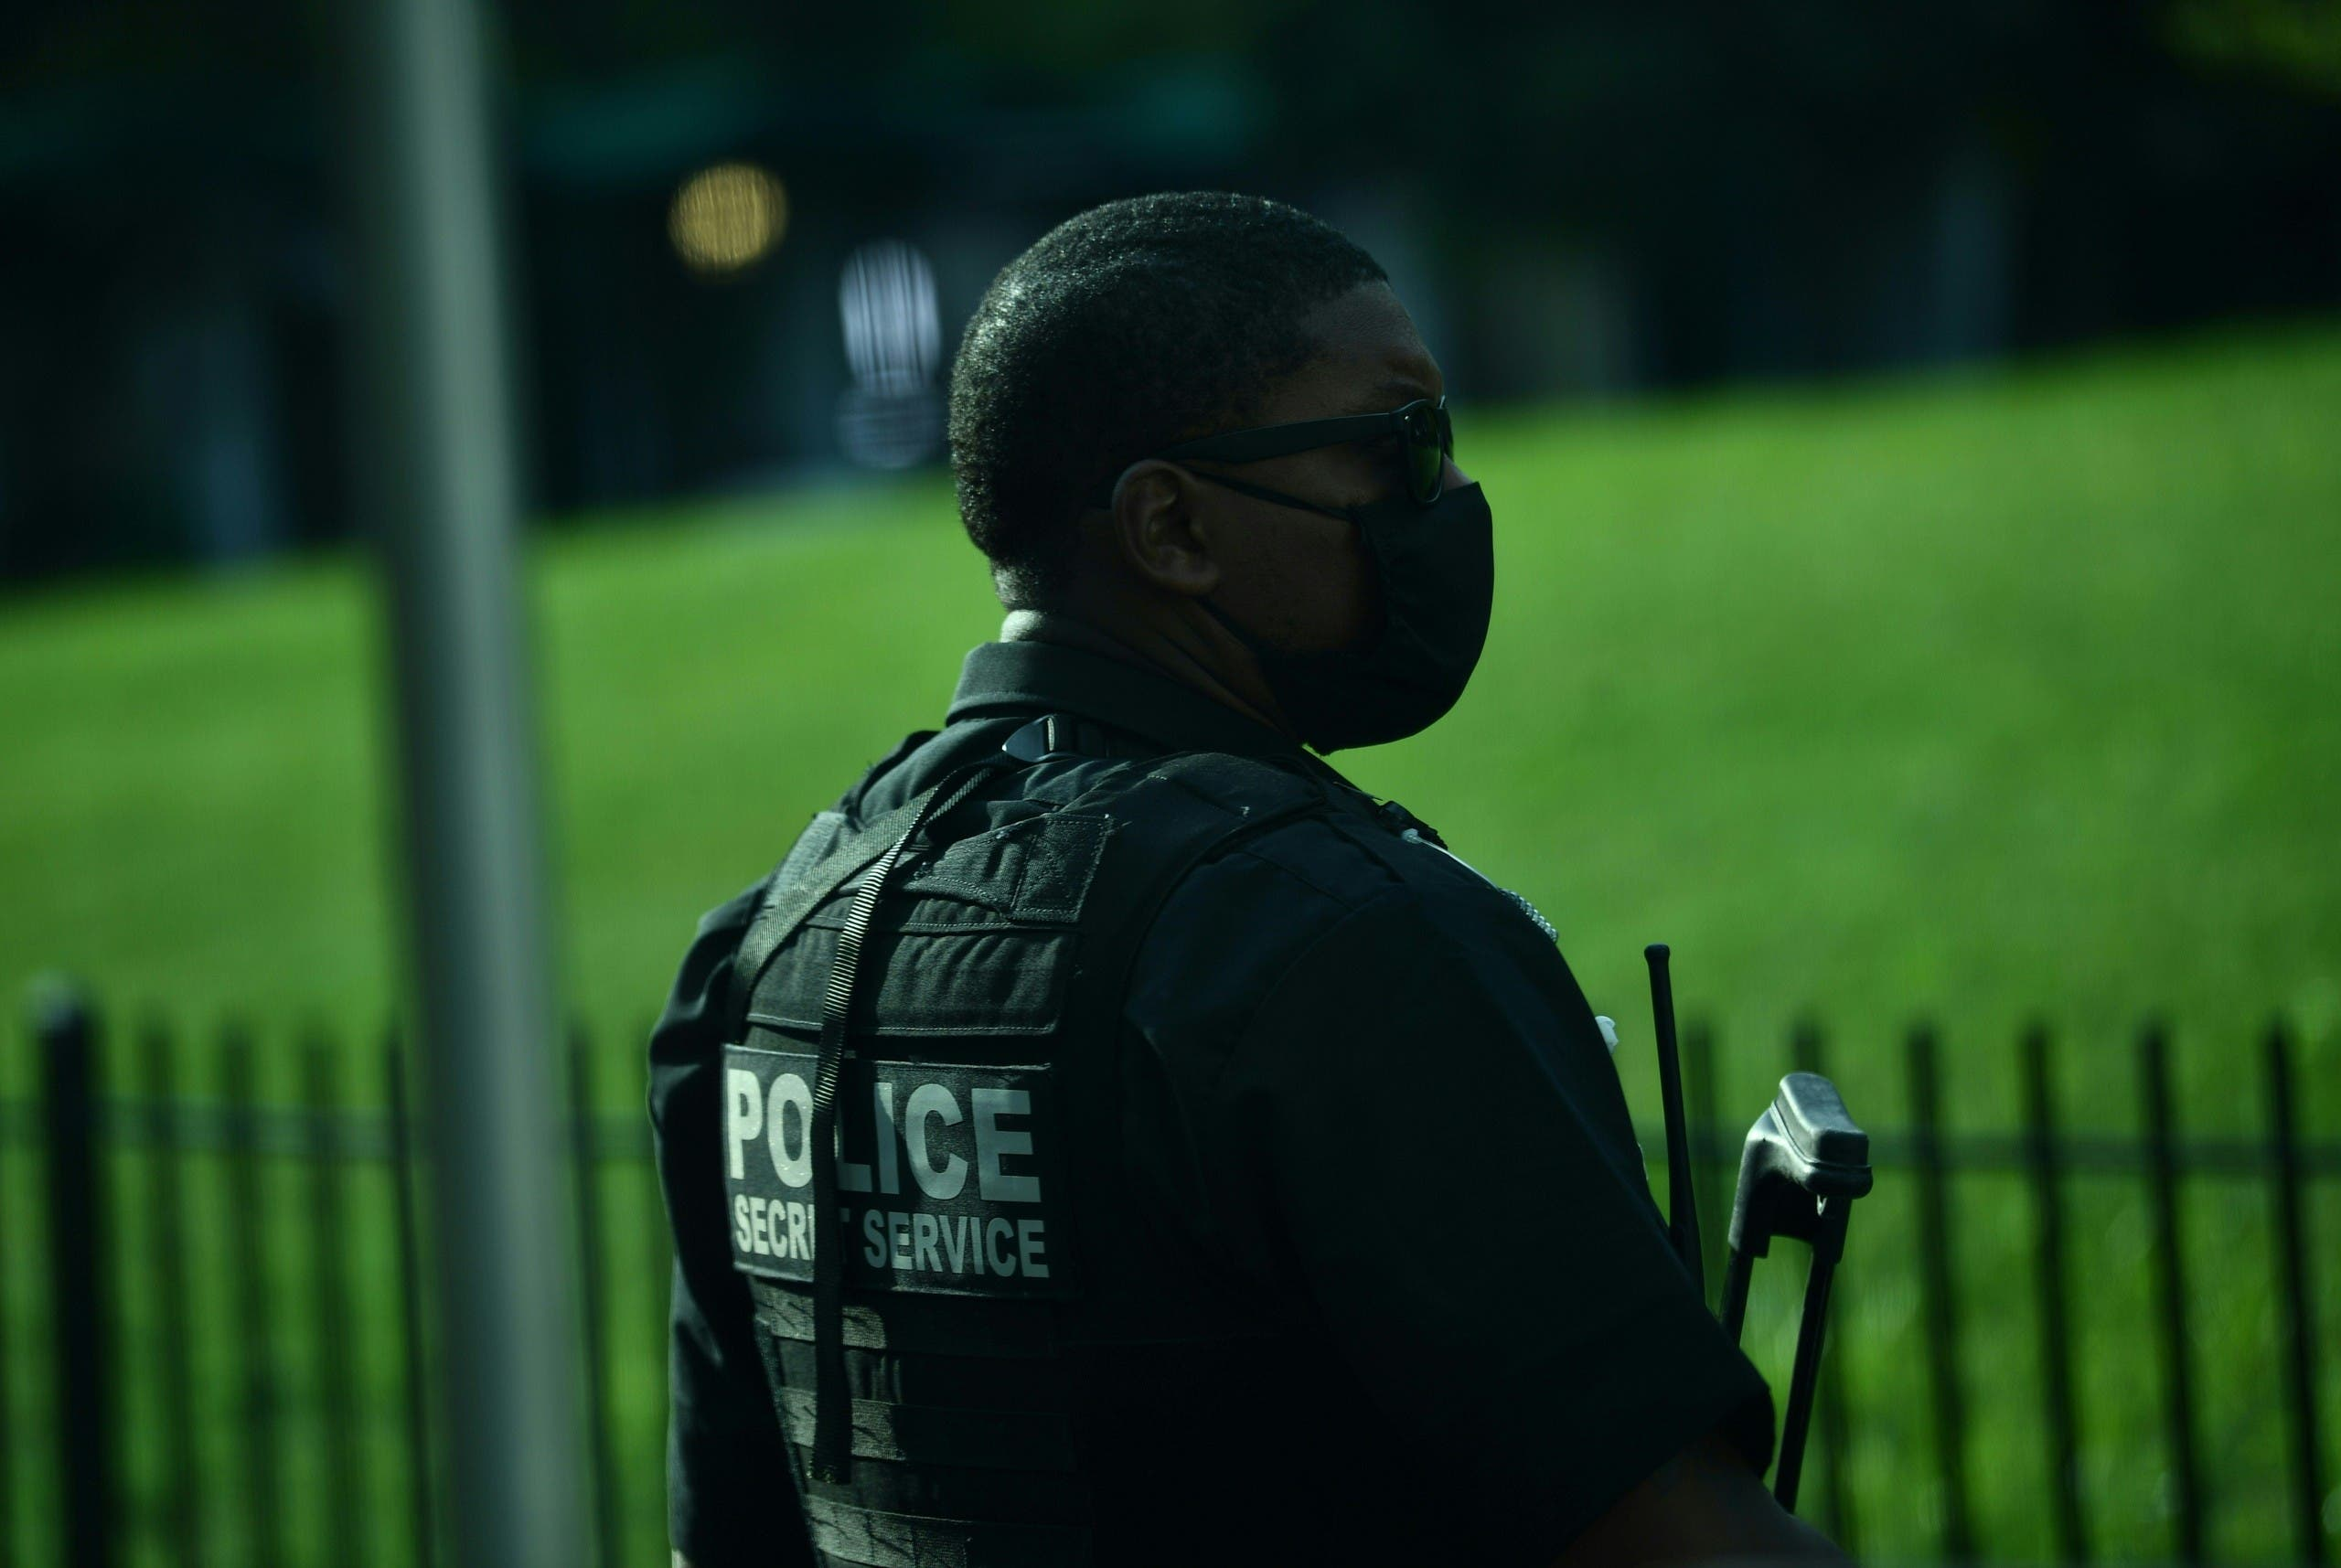 A member of the US Secret Service stands outside the White House in DC. (File photo)